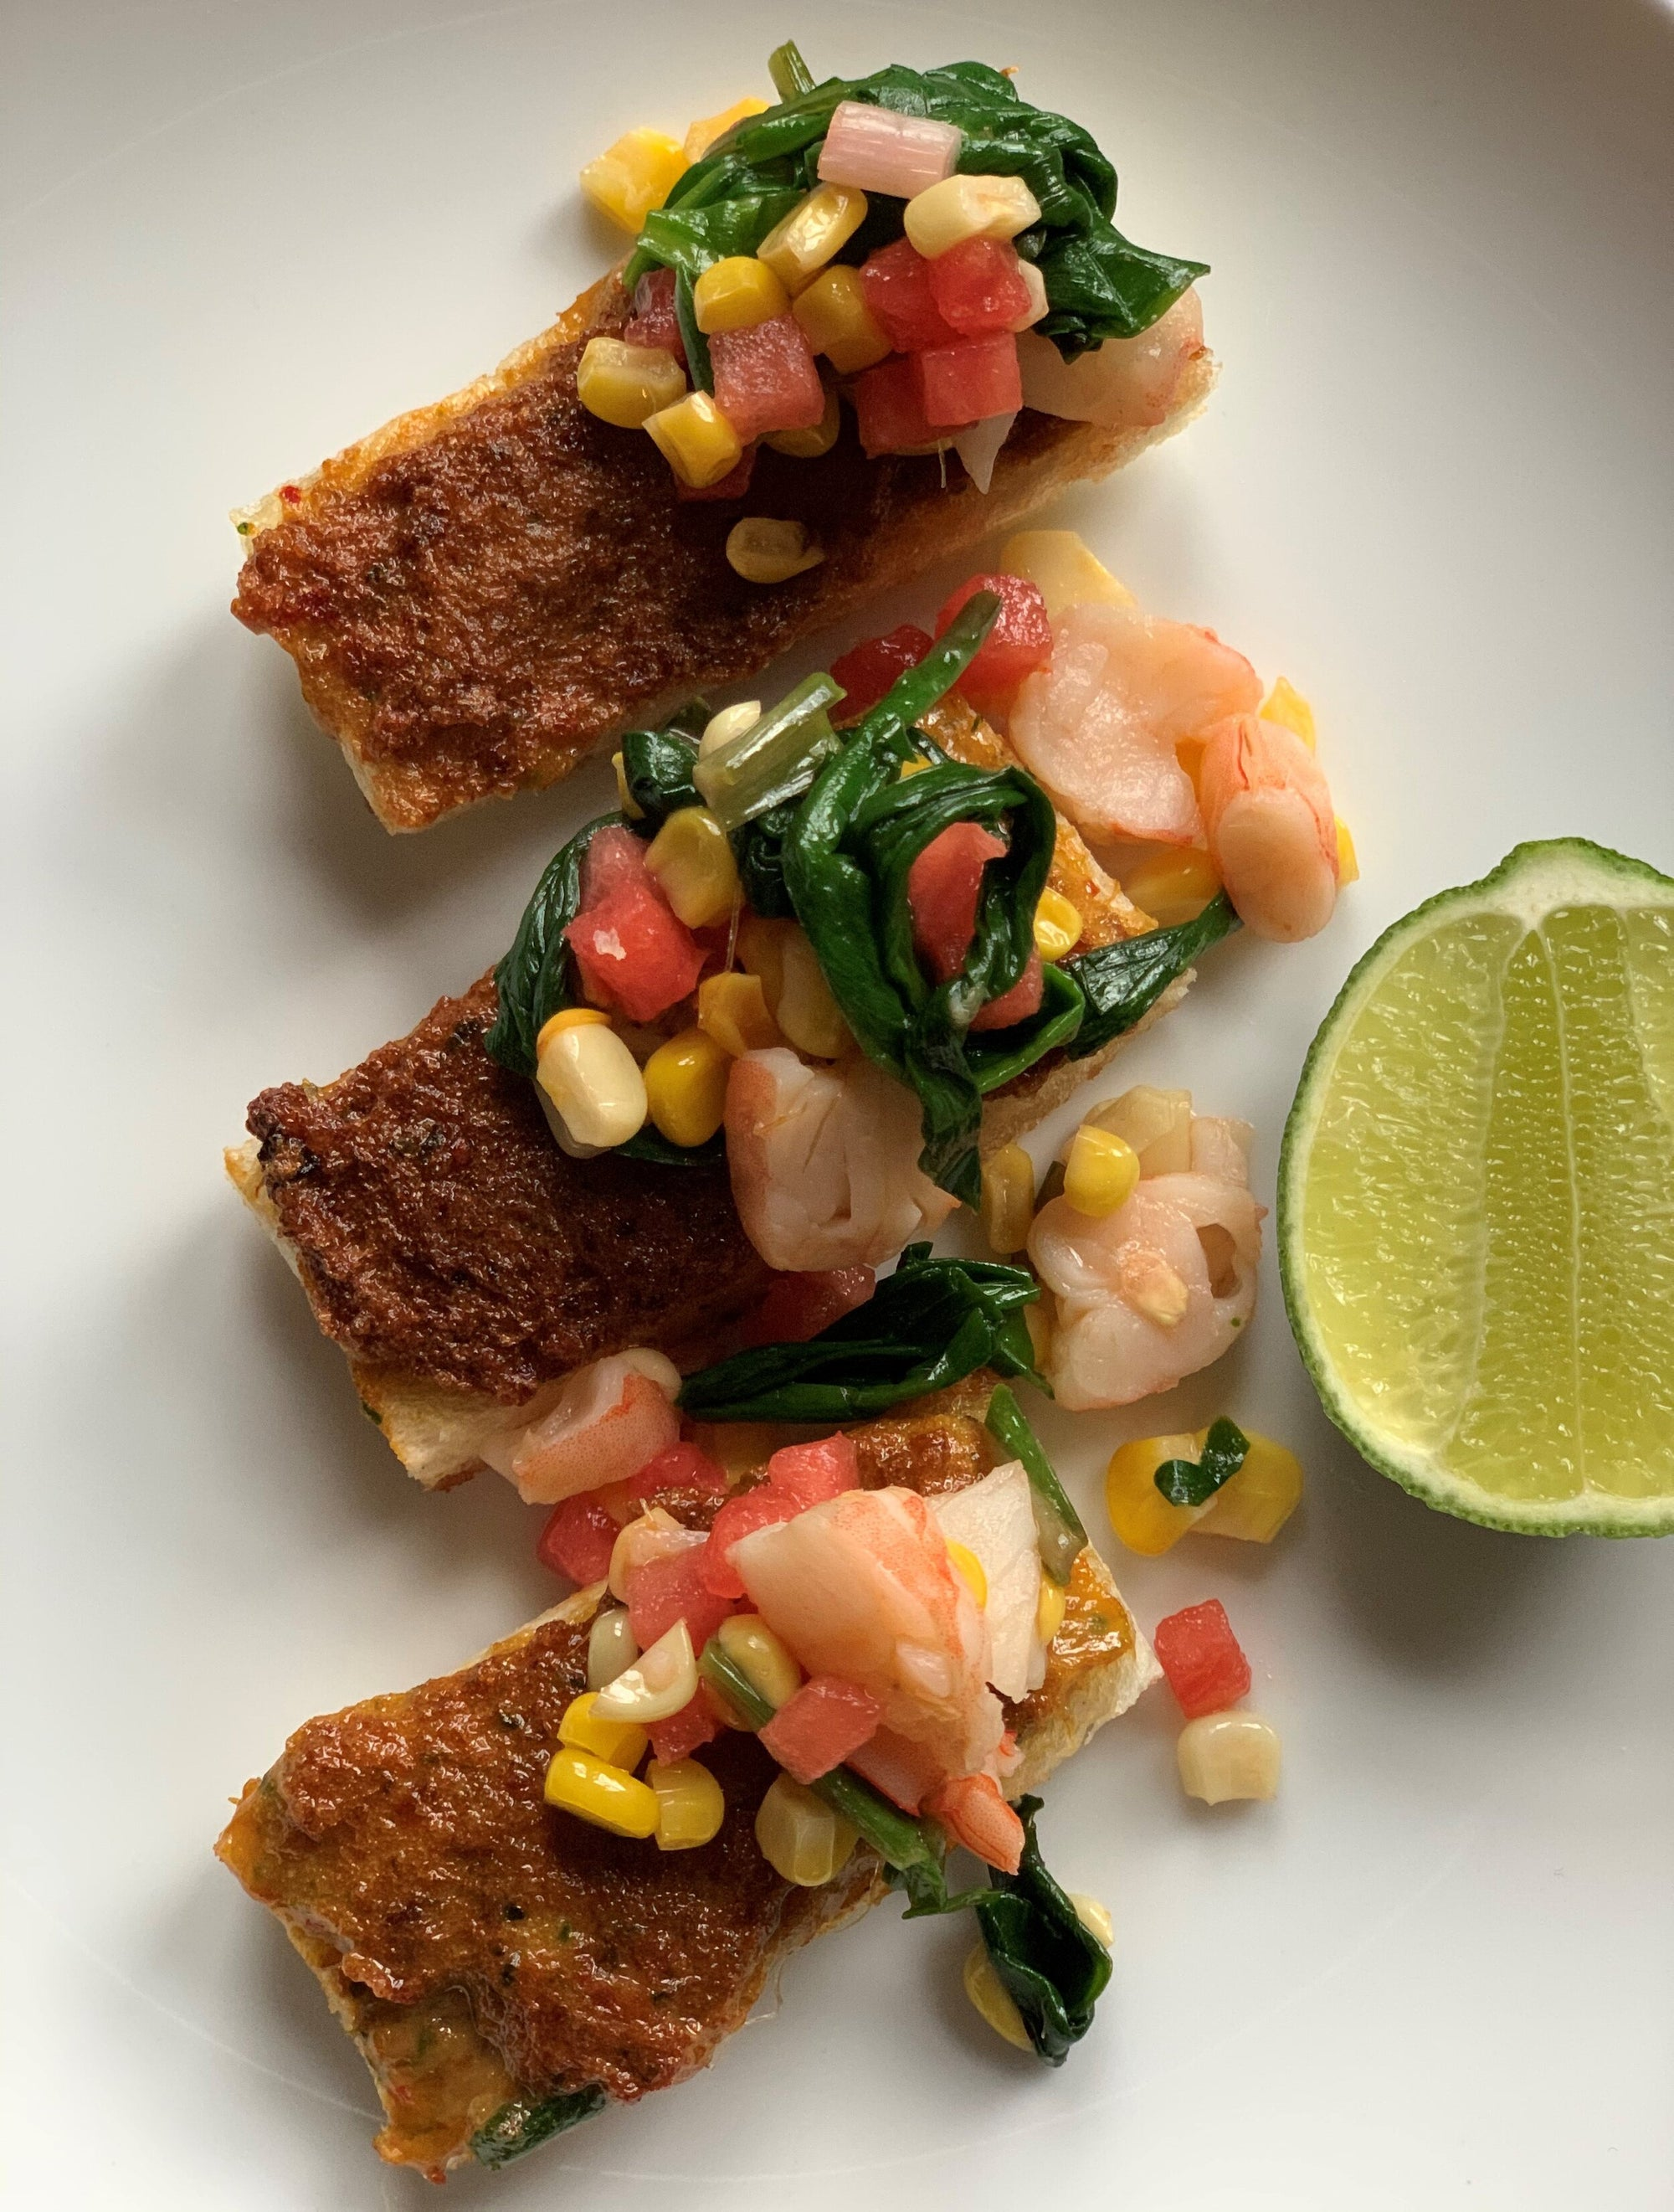 Chefs at Home: Harissa Shrimp Toast with Grilled Corn and Ramp Salad